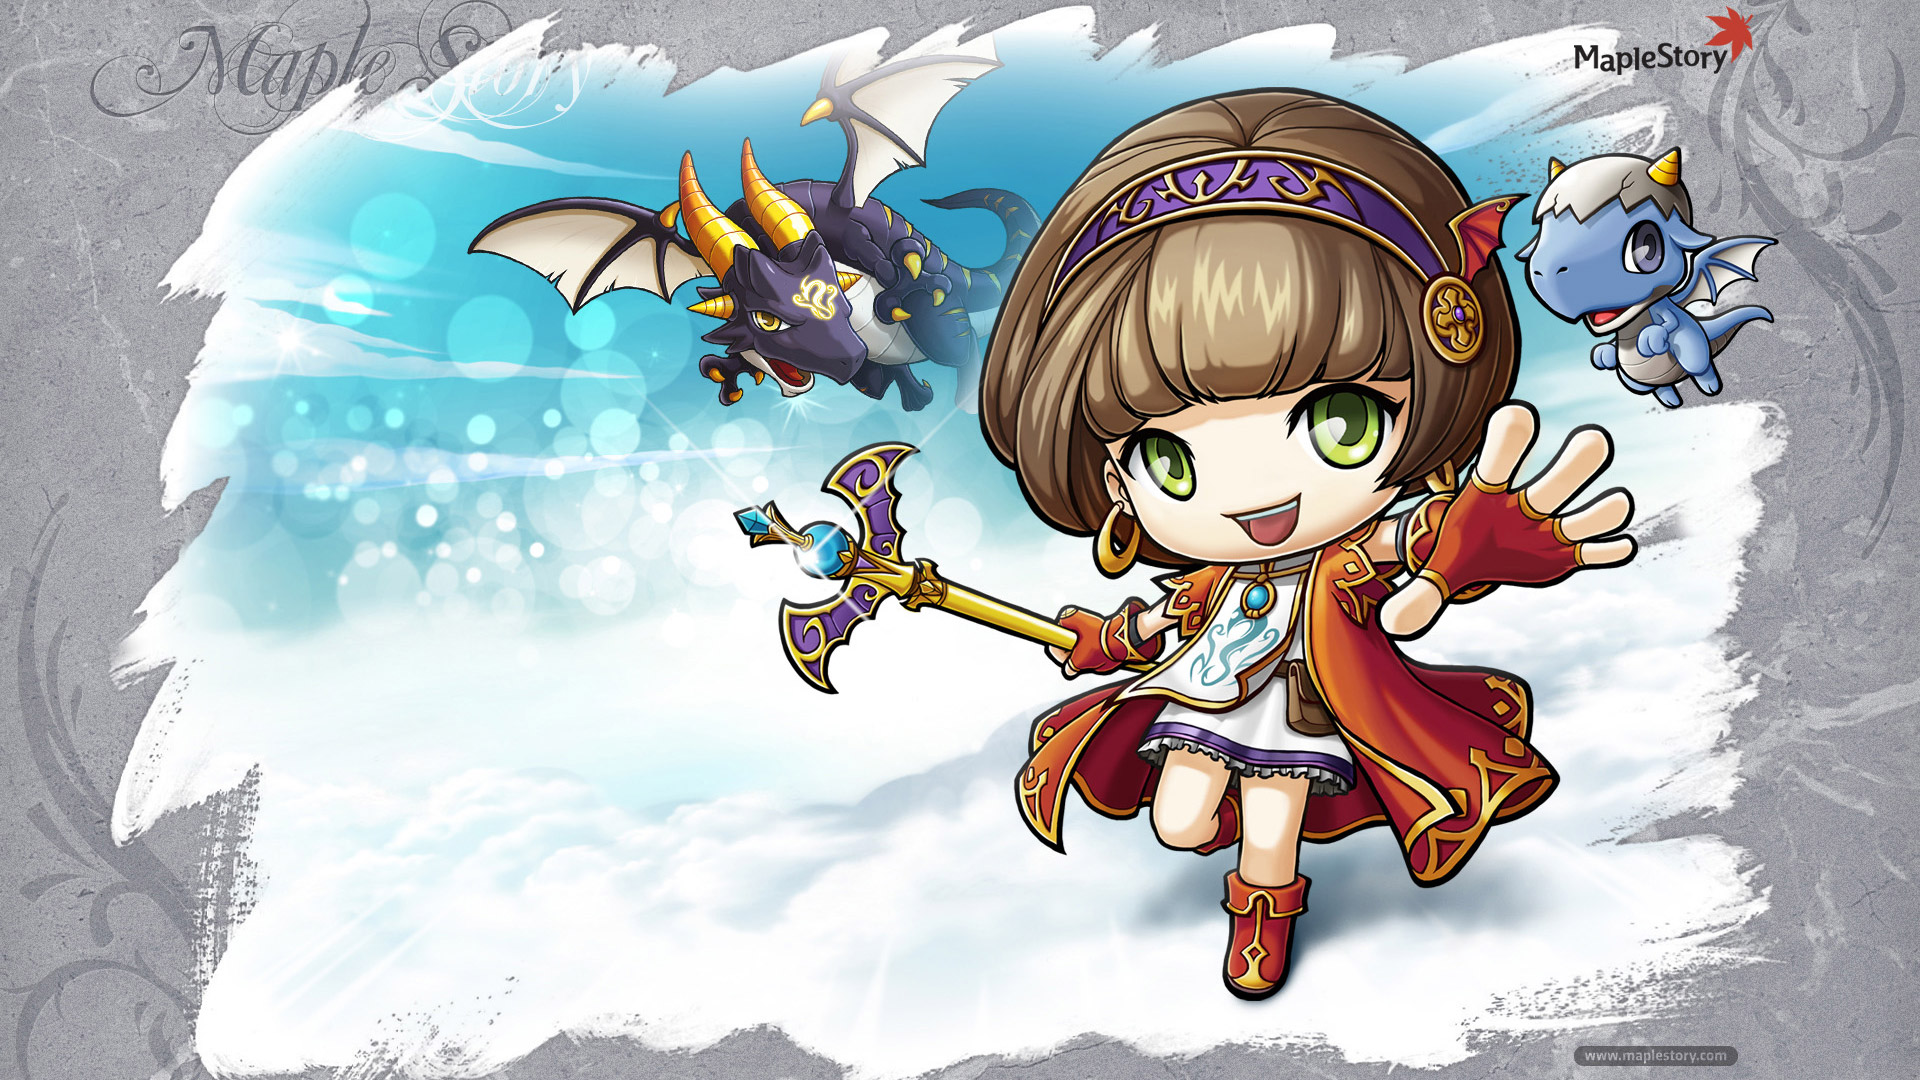 Free MapleStory Wallpaper in 1920x1080